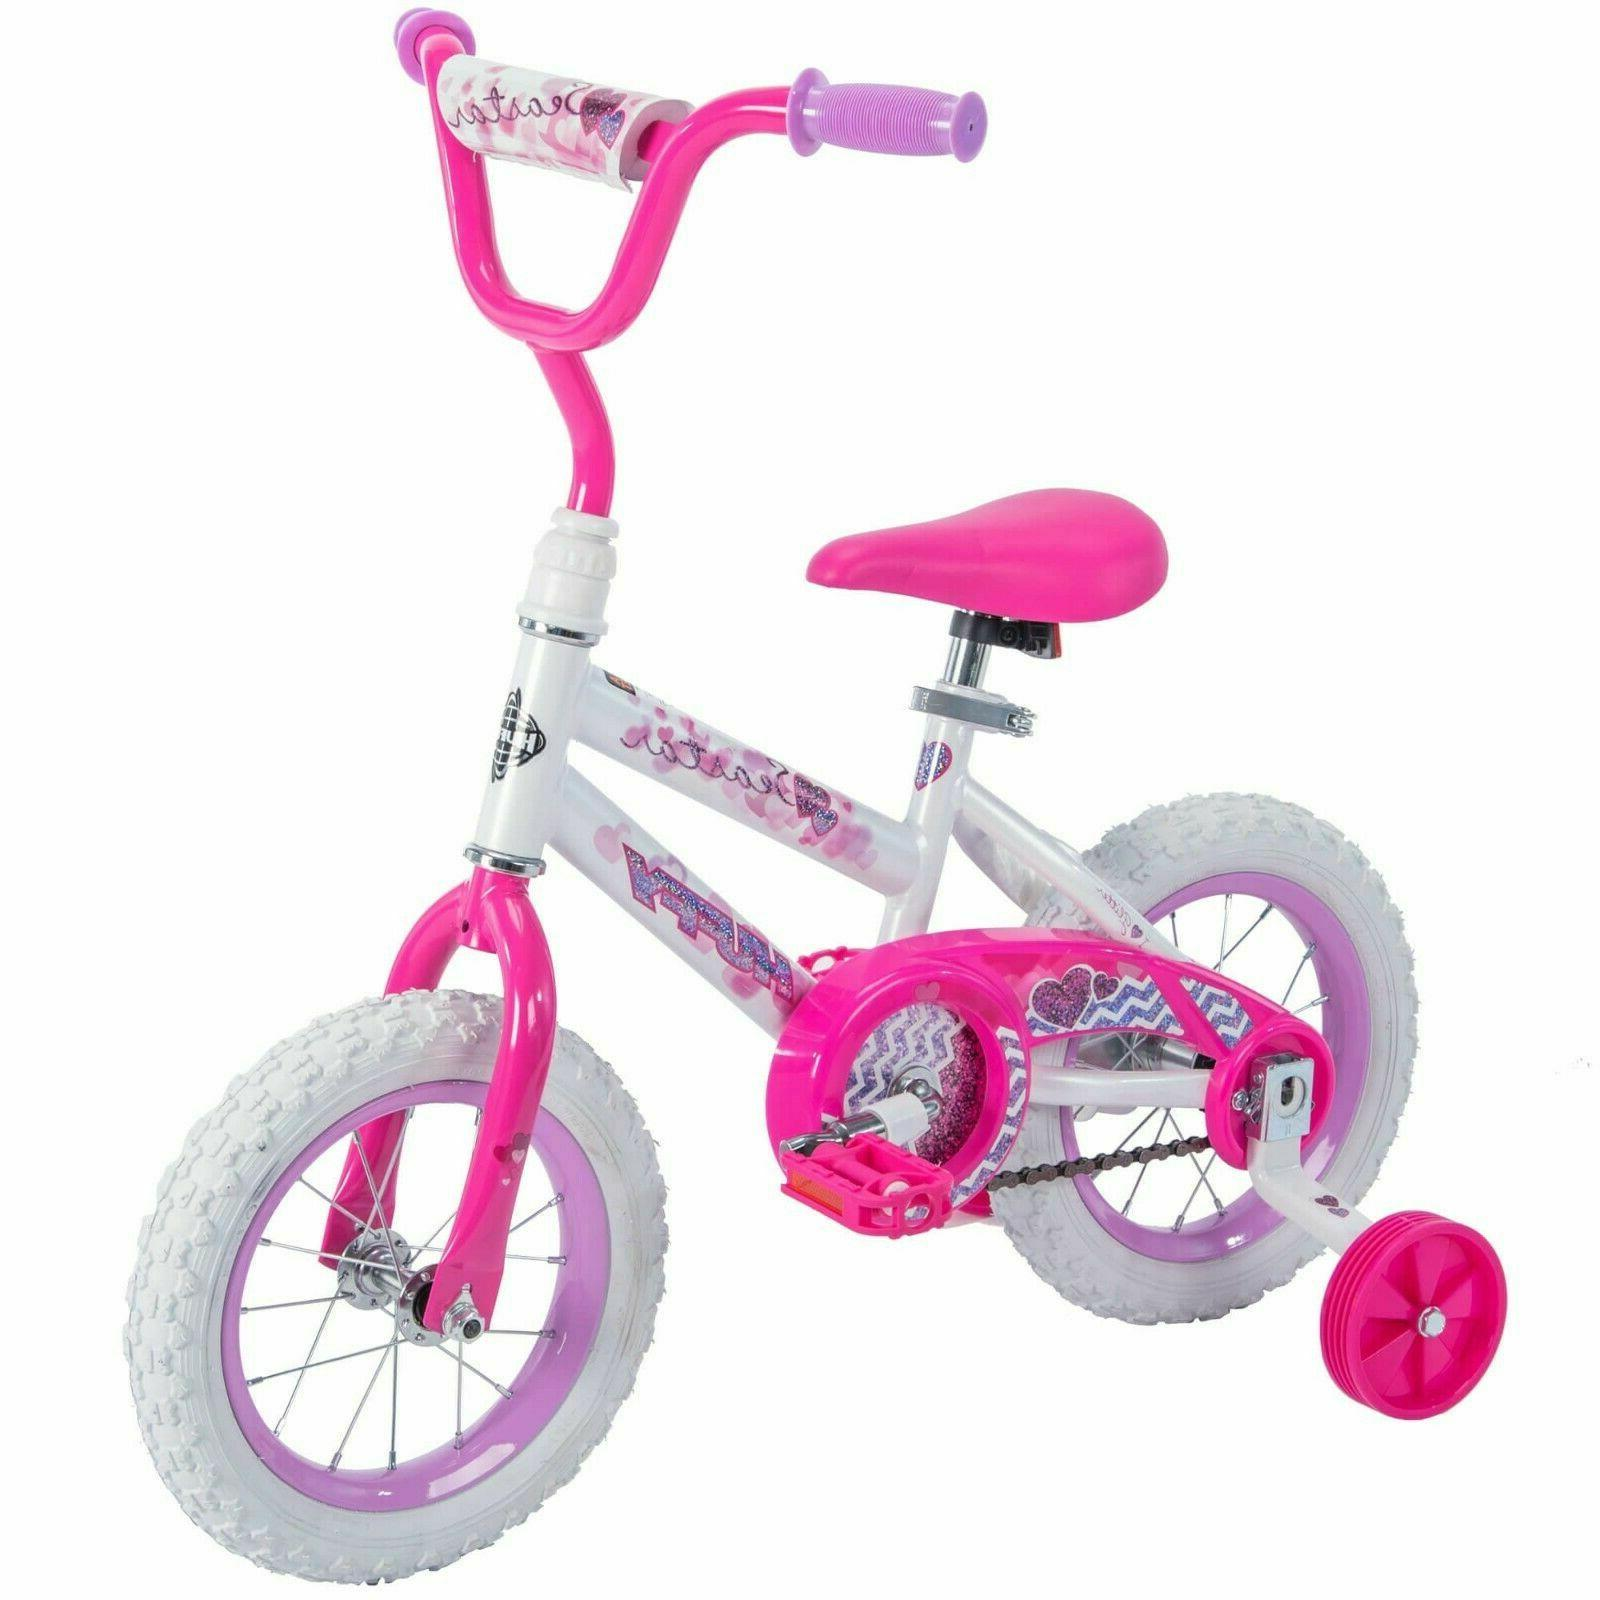 12 Inch Girl's Bike Kids Bicycle With Training Wheels Beginn